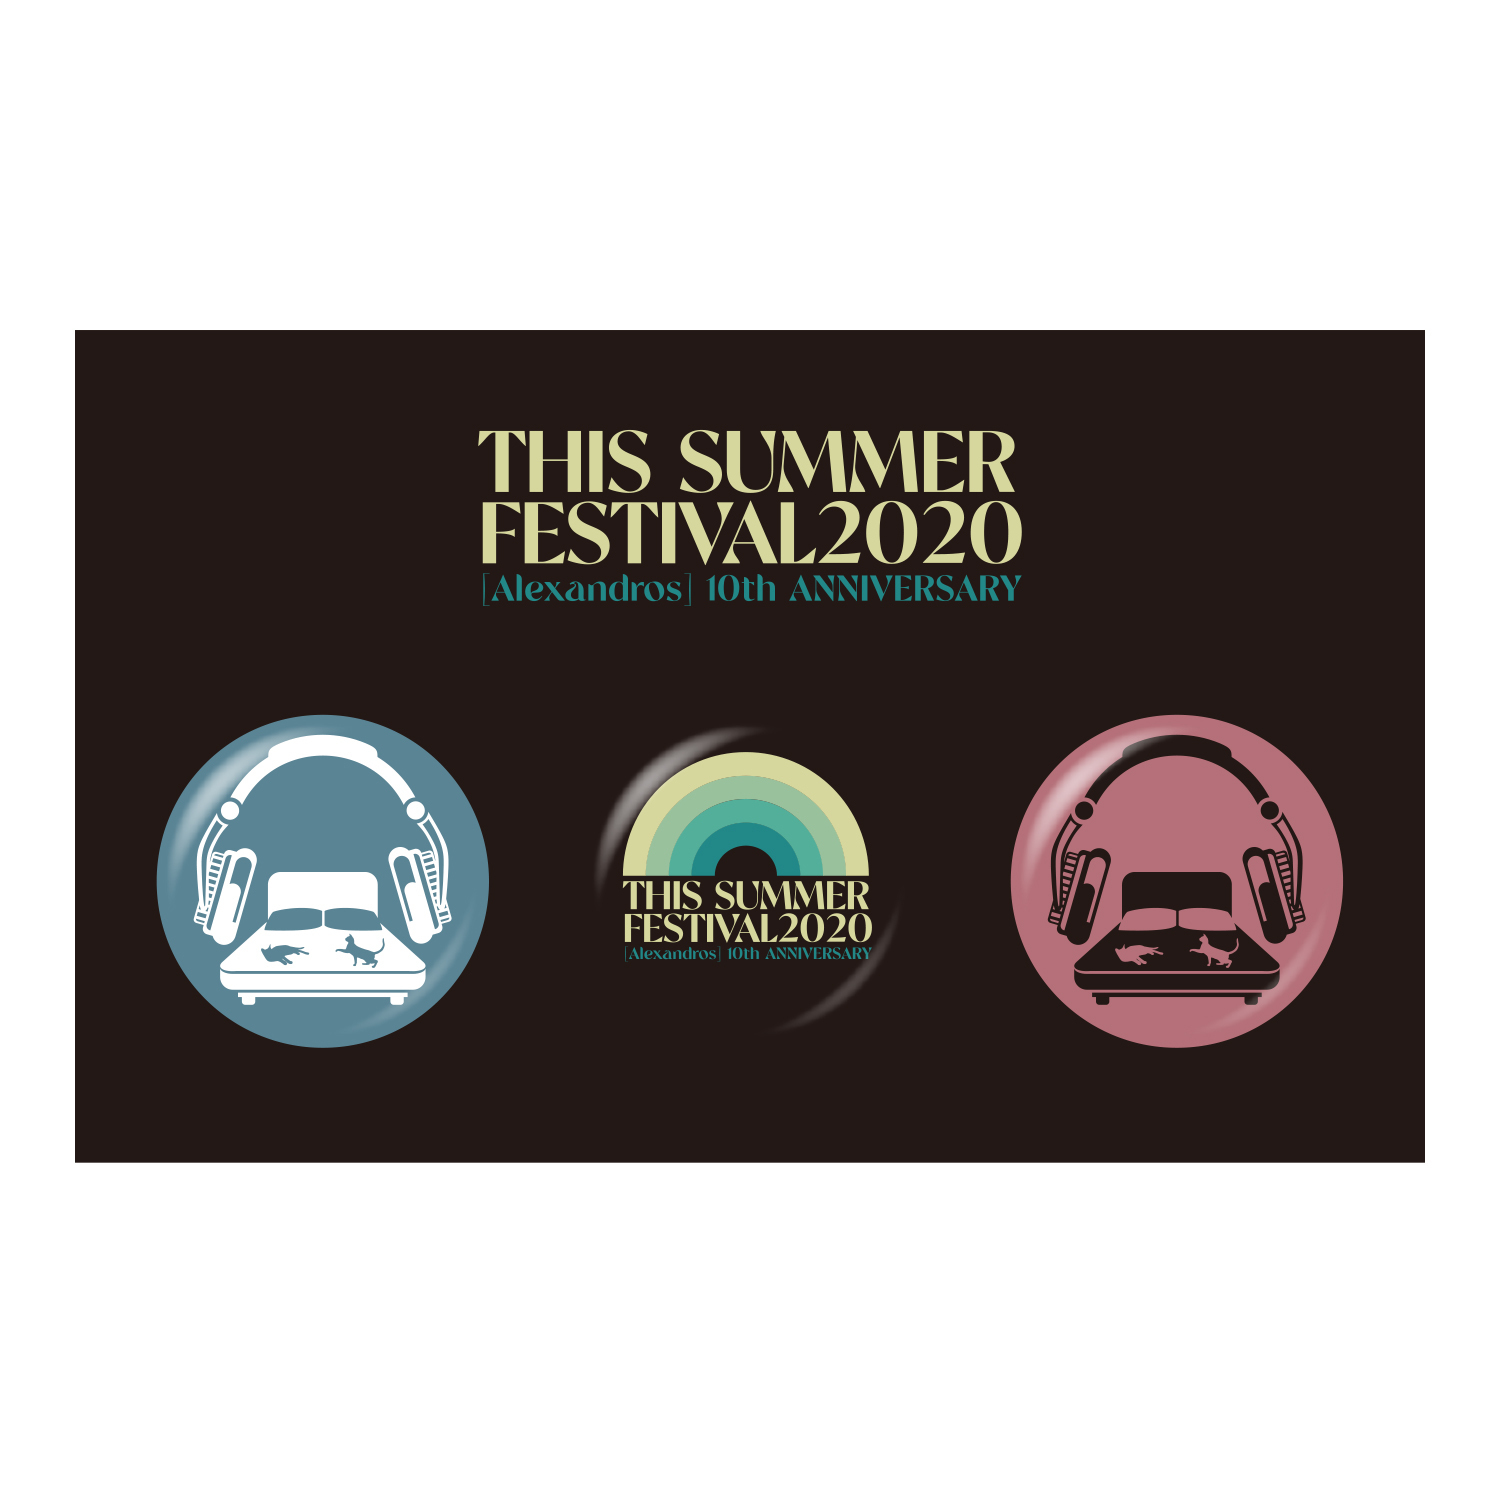 【SPECIAL PRICE】THIS SUMMER FESTIVAL 2020 BADGE SET